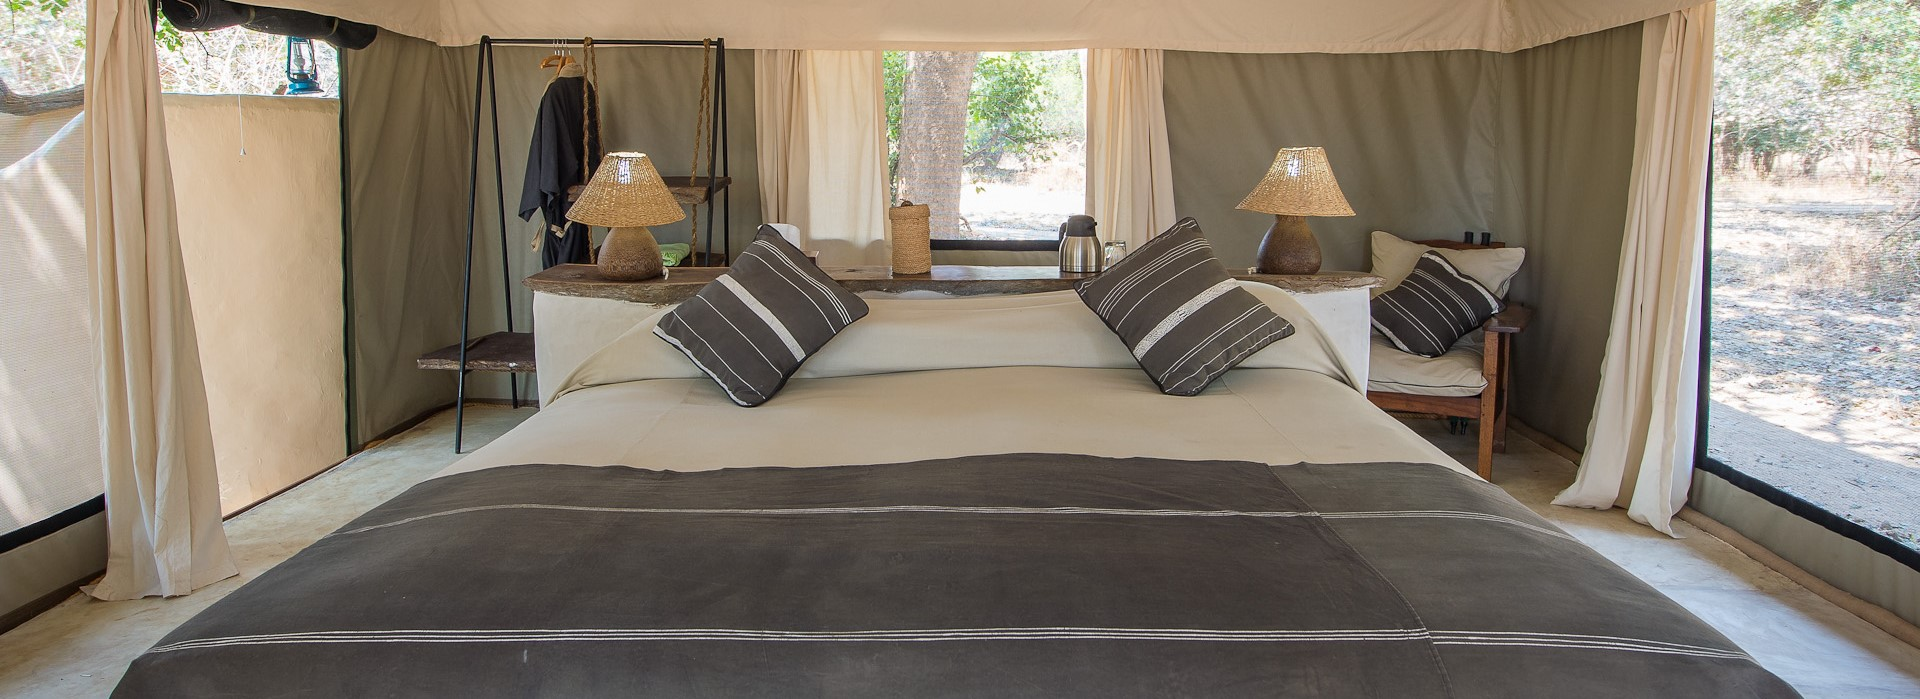 south-luangwa-zambia-tented-camp